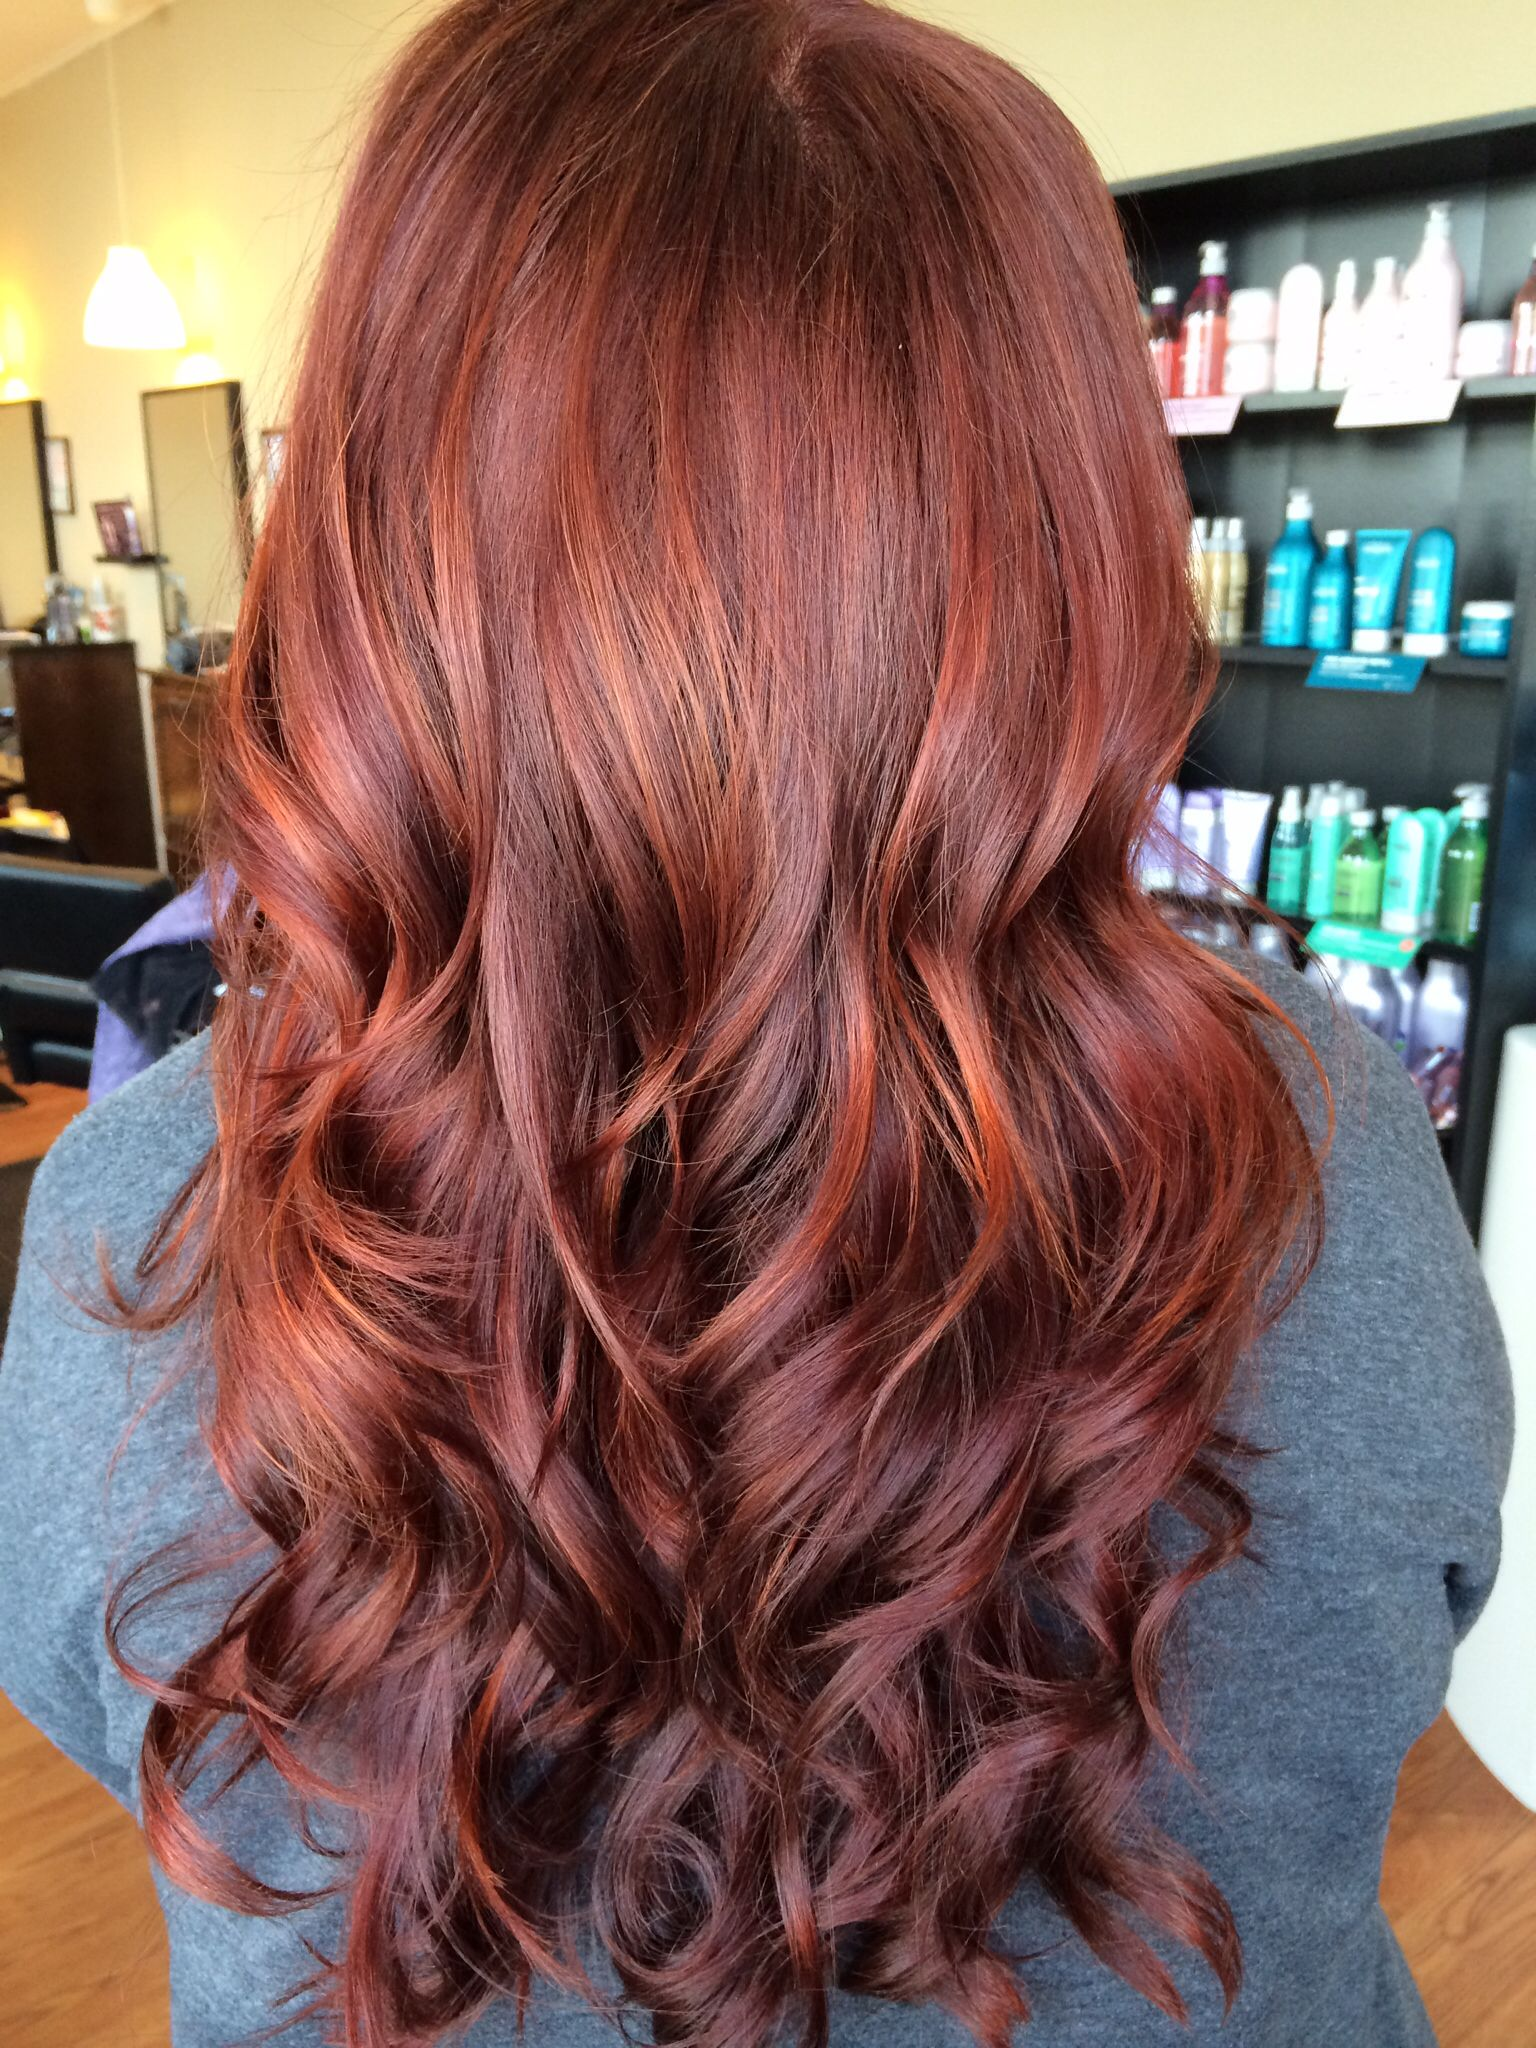 balayage highlights red hair hair on pinterest balayage. Black Bedroom Furniture Sets. Home Design Ideas